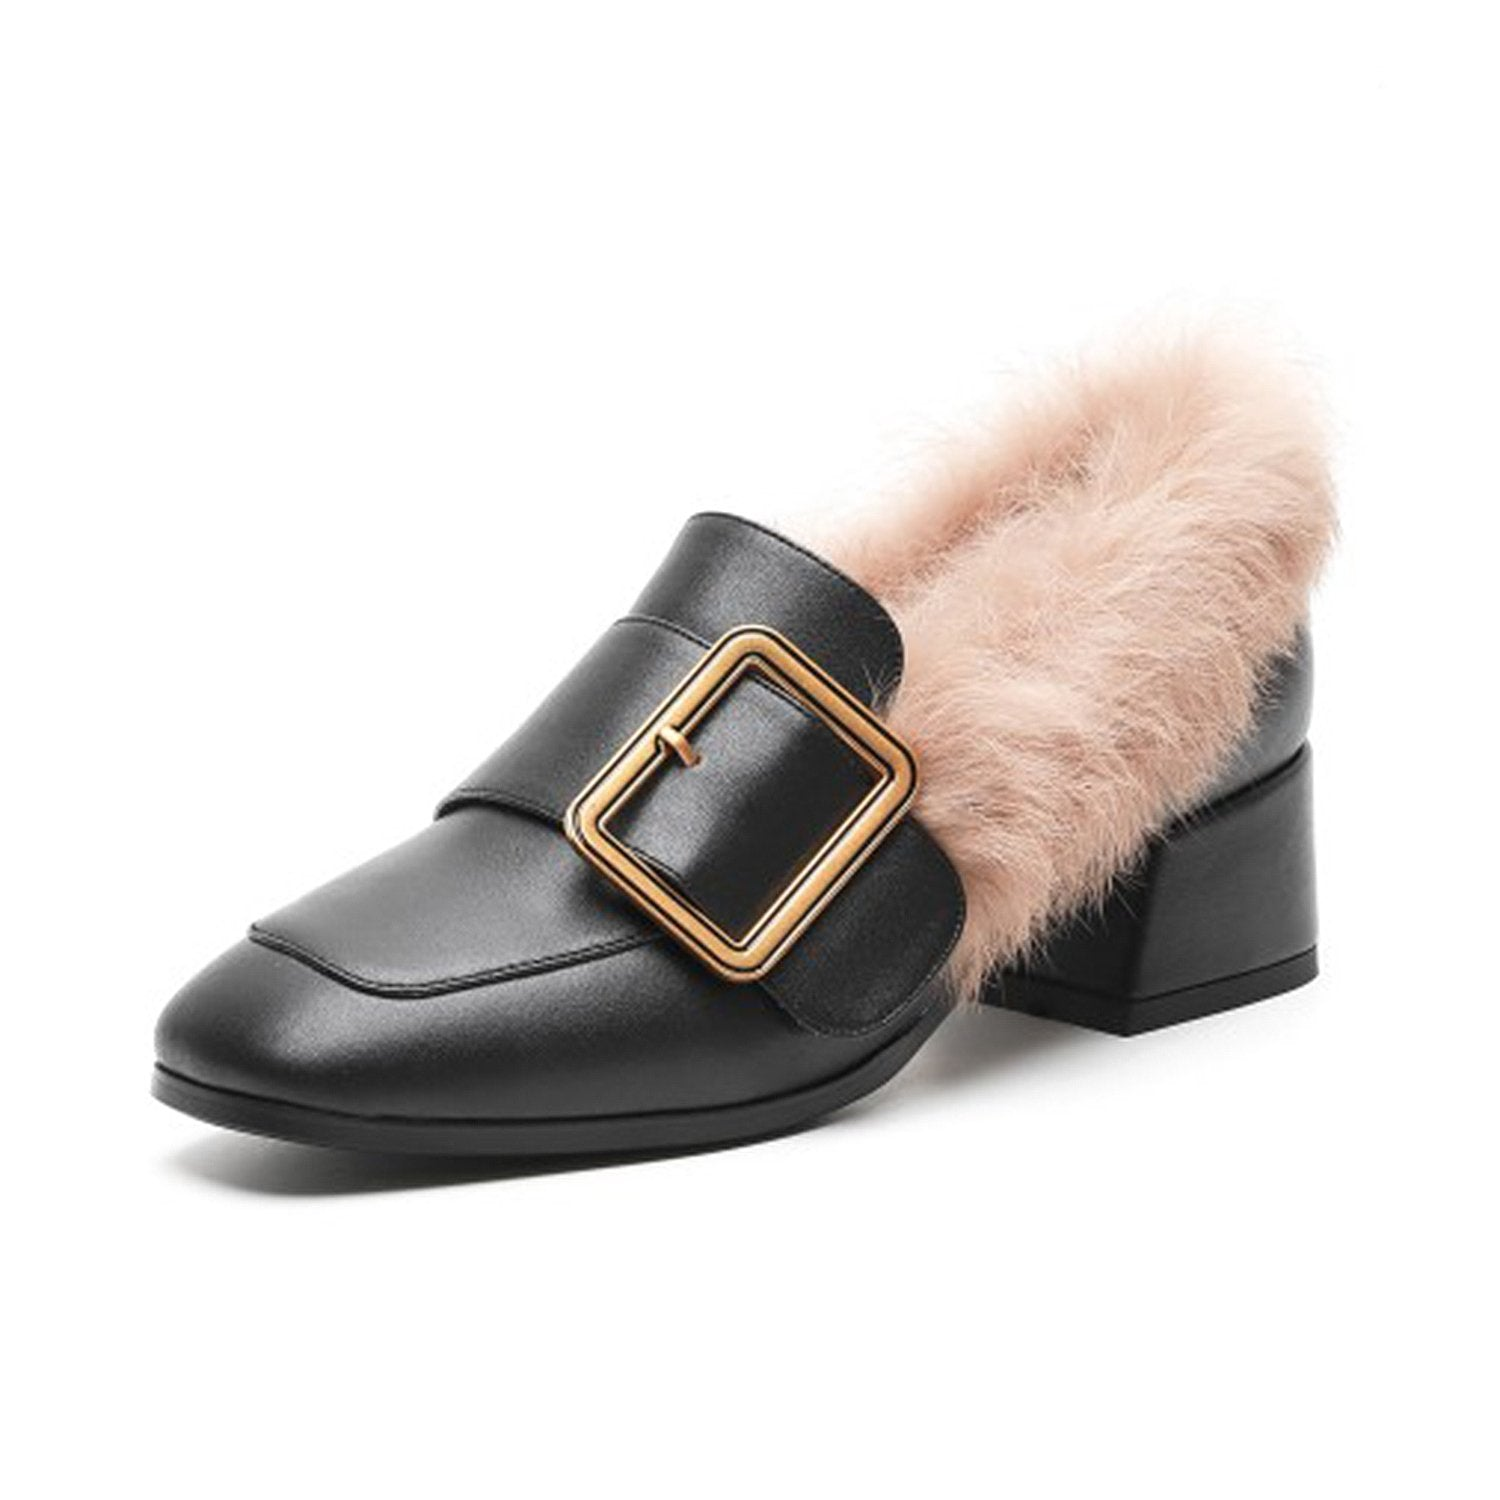 Leather Square Metal Buckle Fur Shoes